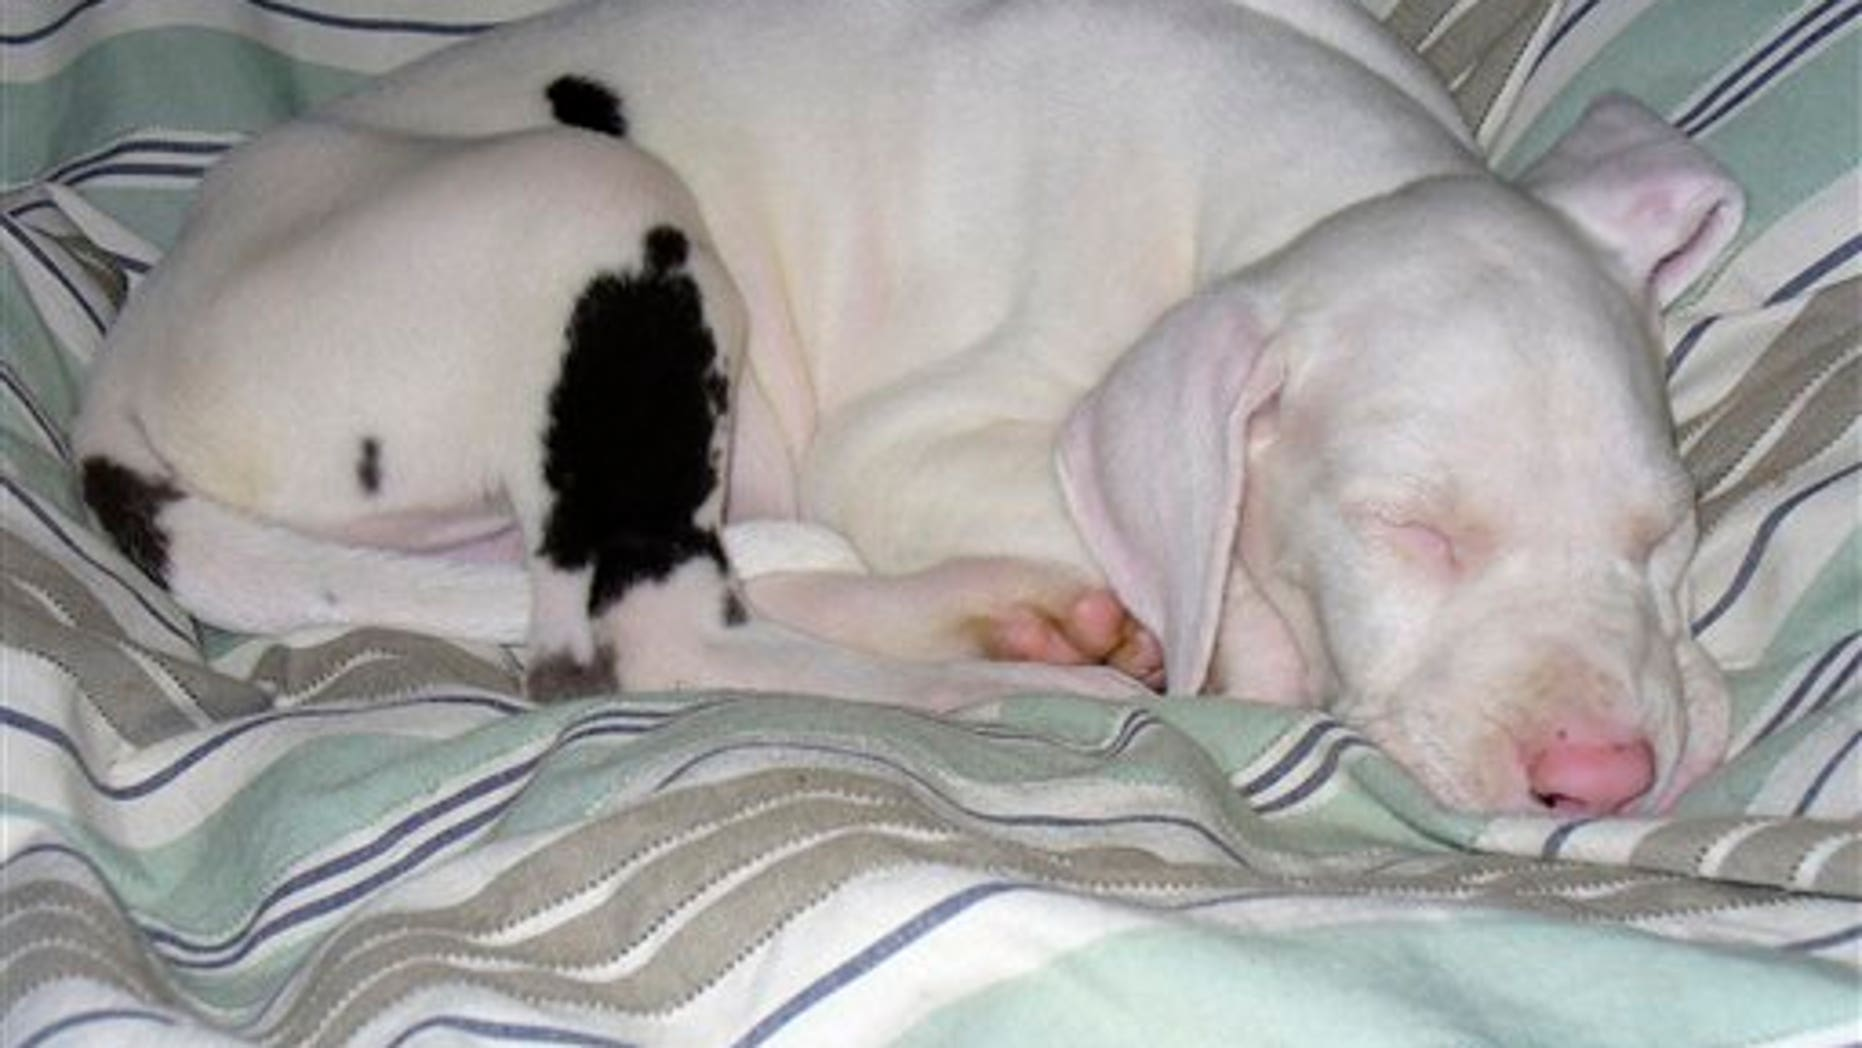 This October 2007 photo courtesy of Trevor S. Cornpropst shows Keller sleeping in Fredericksburg, Va.  Cornpropst rescued the all-white, deaf and blind Great Dane puppy at 8-weeks-old. He spent weeks sitting up with the pup he named Keller, in honor of Helen Keller, to comfort him as he settled in. Cornpropst wanted the puppy to feel secure without benefit of soothing coos, facial expressions and other body language.  That was back in 2007. Keller is now 120 pounds, healthy and happy, Cornpropst said.   (AP Photo/Trevor S. Cornpropst)  NO SALES